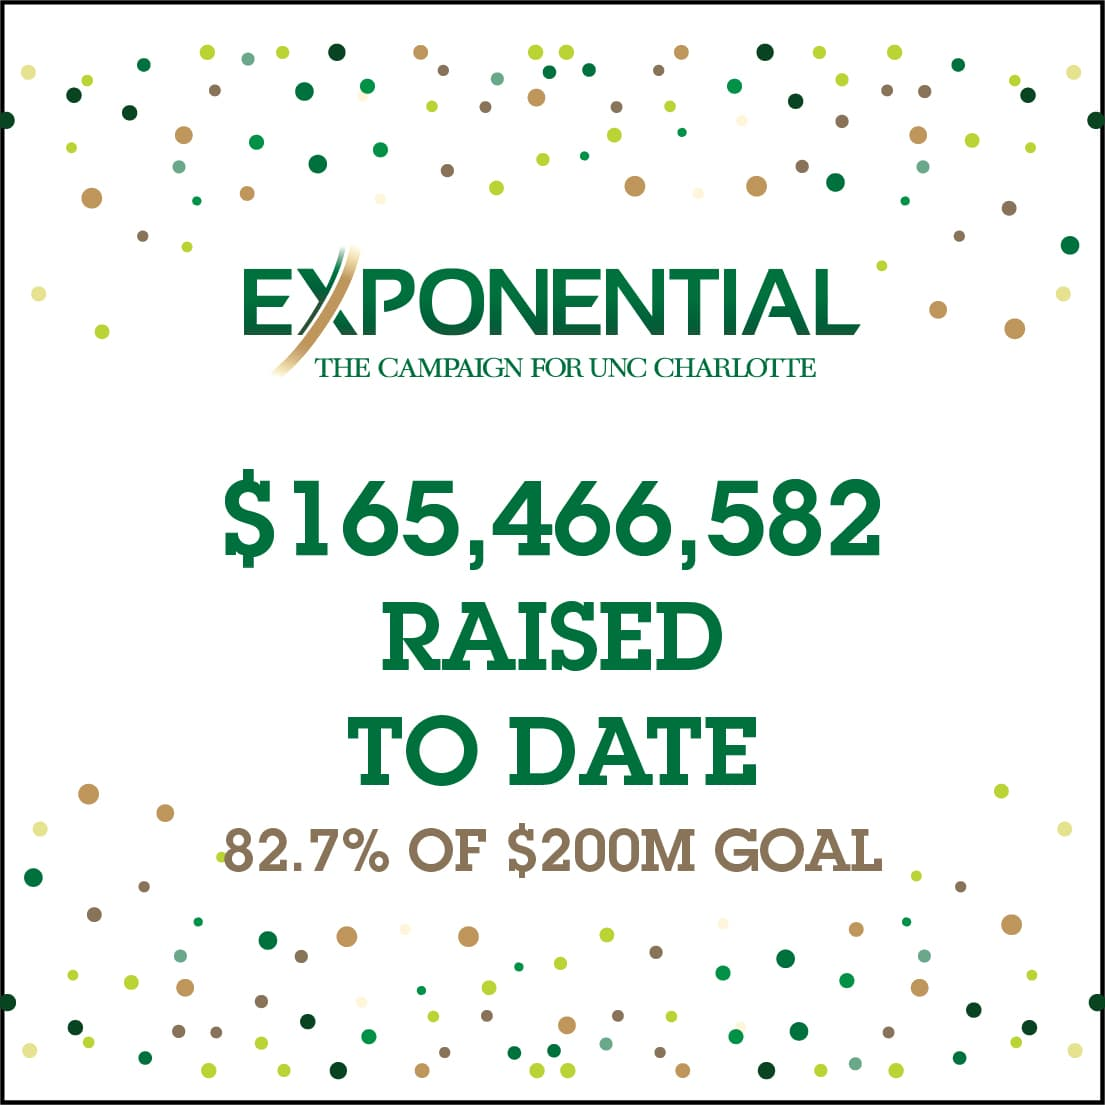 EXPONENTIAL: The Campaign for UNC Charlotte $165,466,582 raised to date; 82.7% of $200M goal